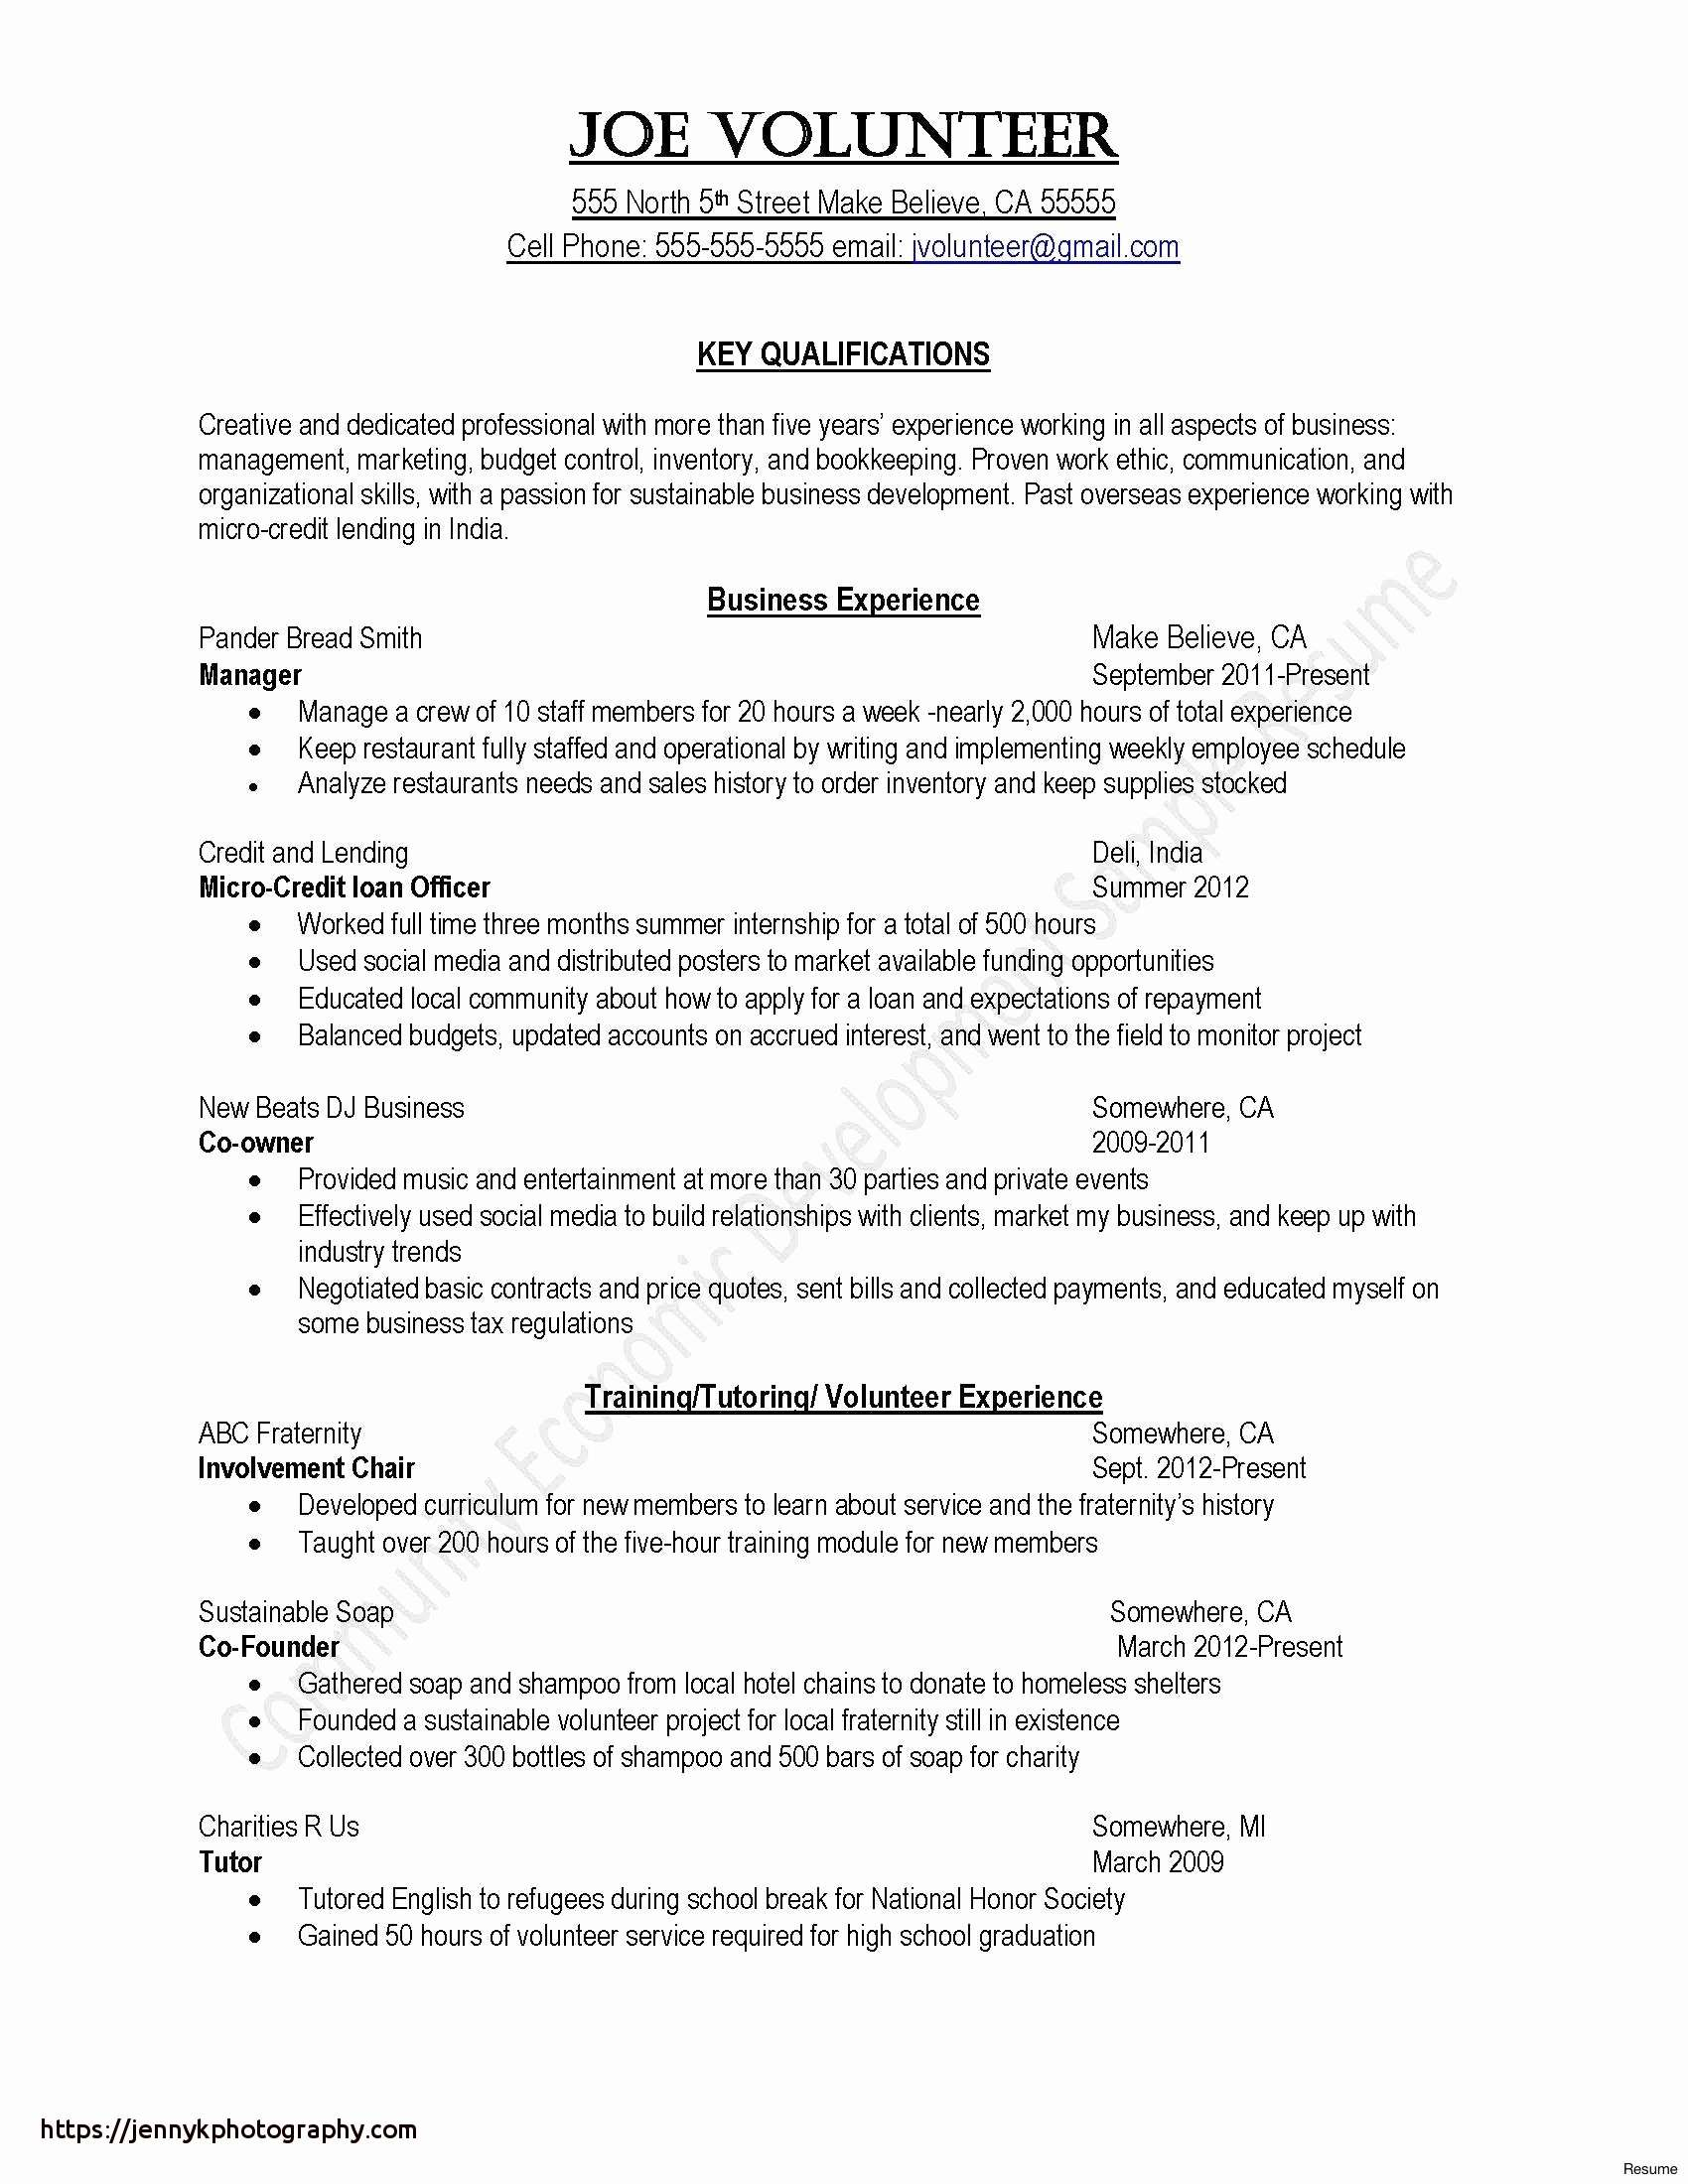 resume for correctional officer Collection-Correctional ficer Cover Letter Lovely Police Ficer Resume Example Luxury Correctional Ficer Skills 31 Awesome 16-p